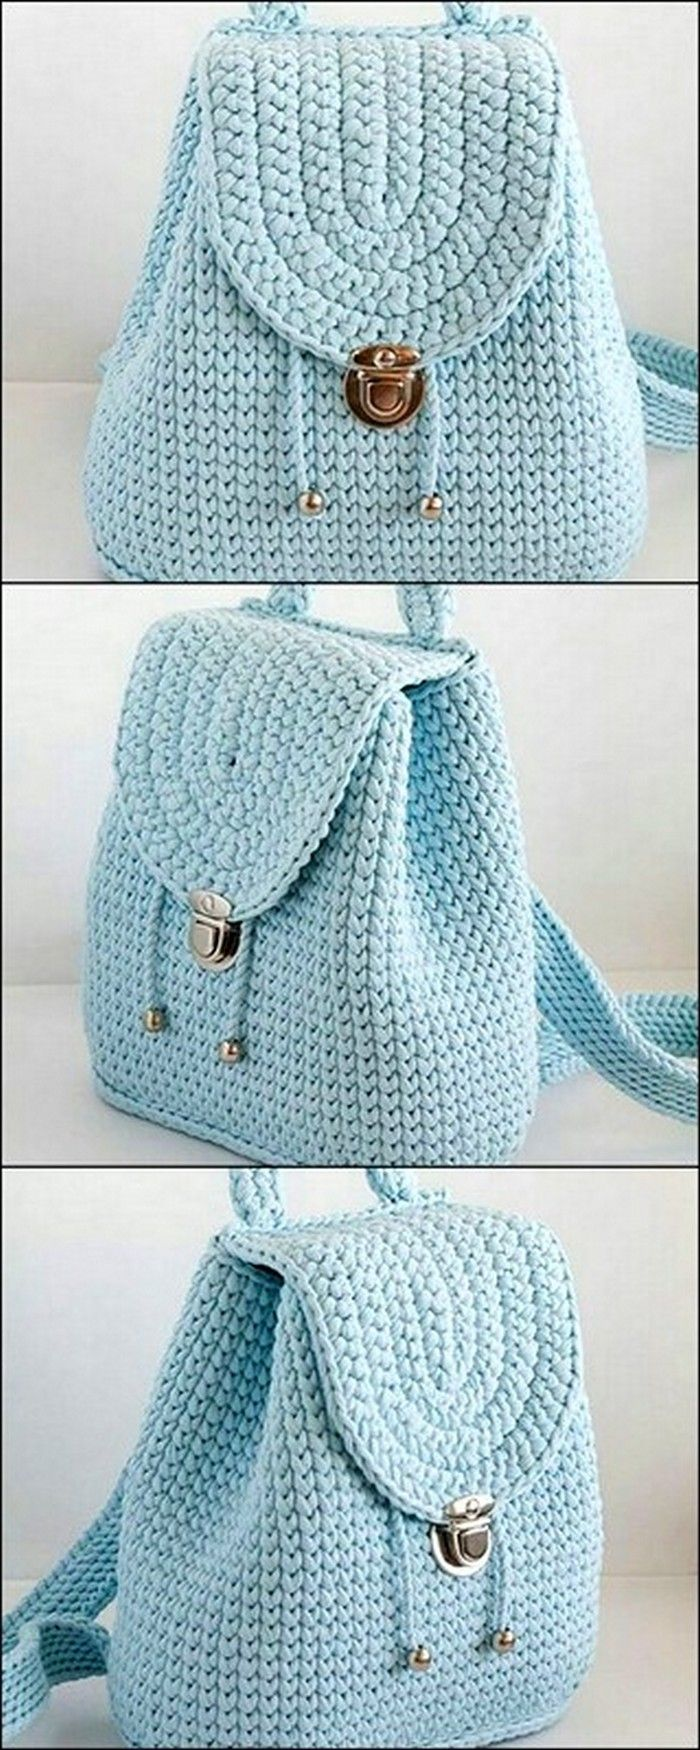 diy Amazing crochet handbag